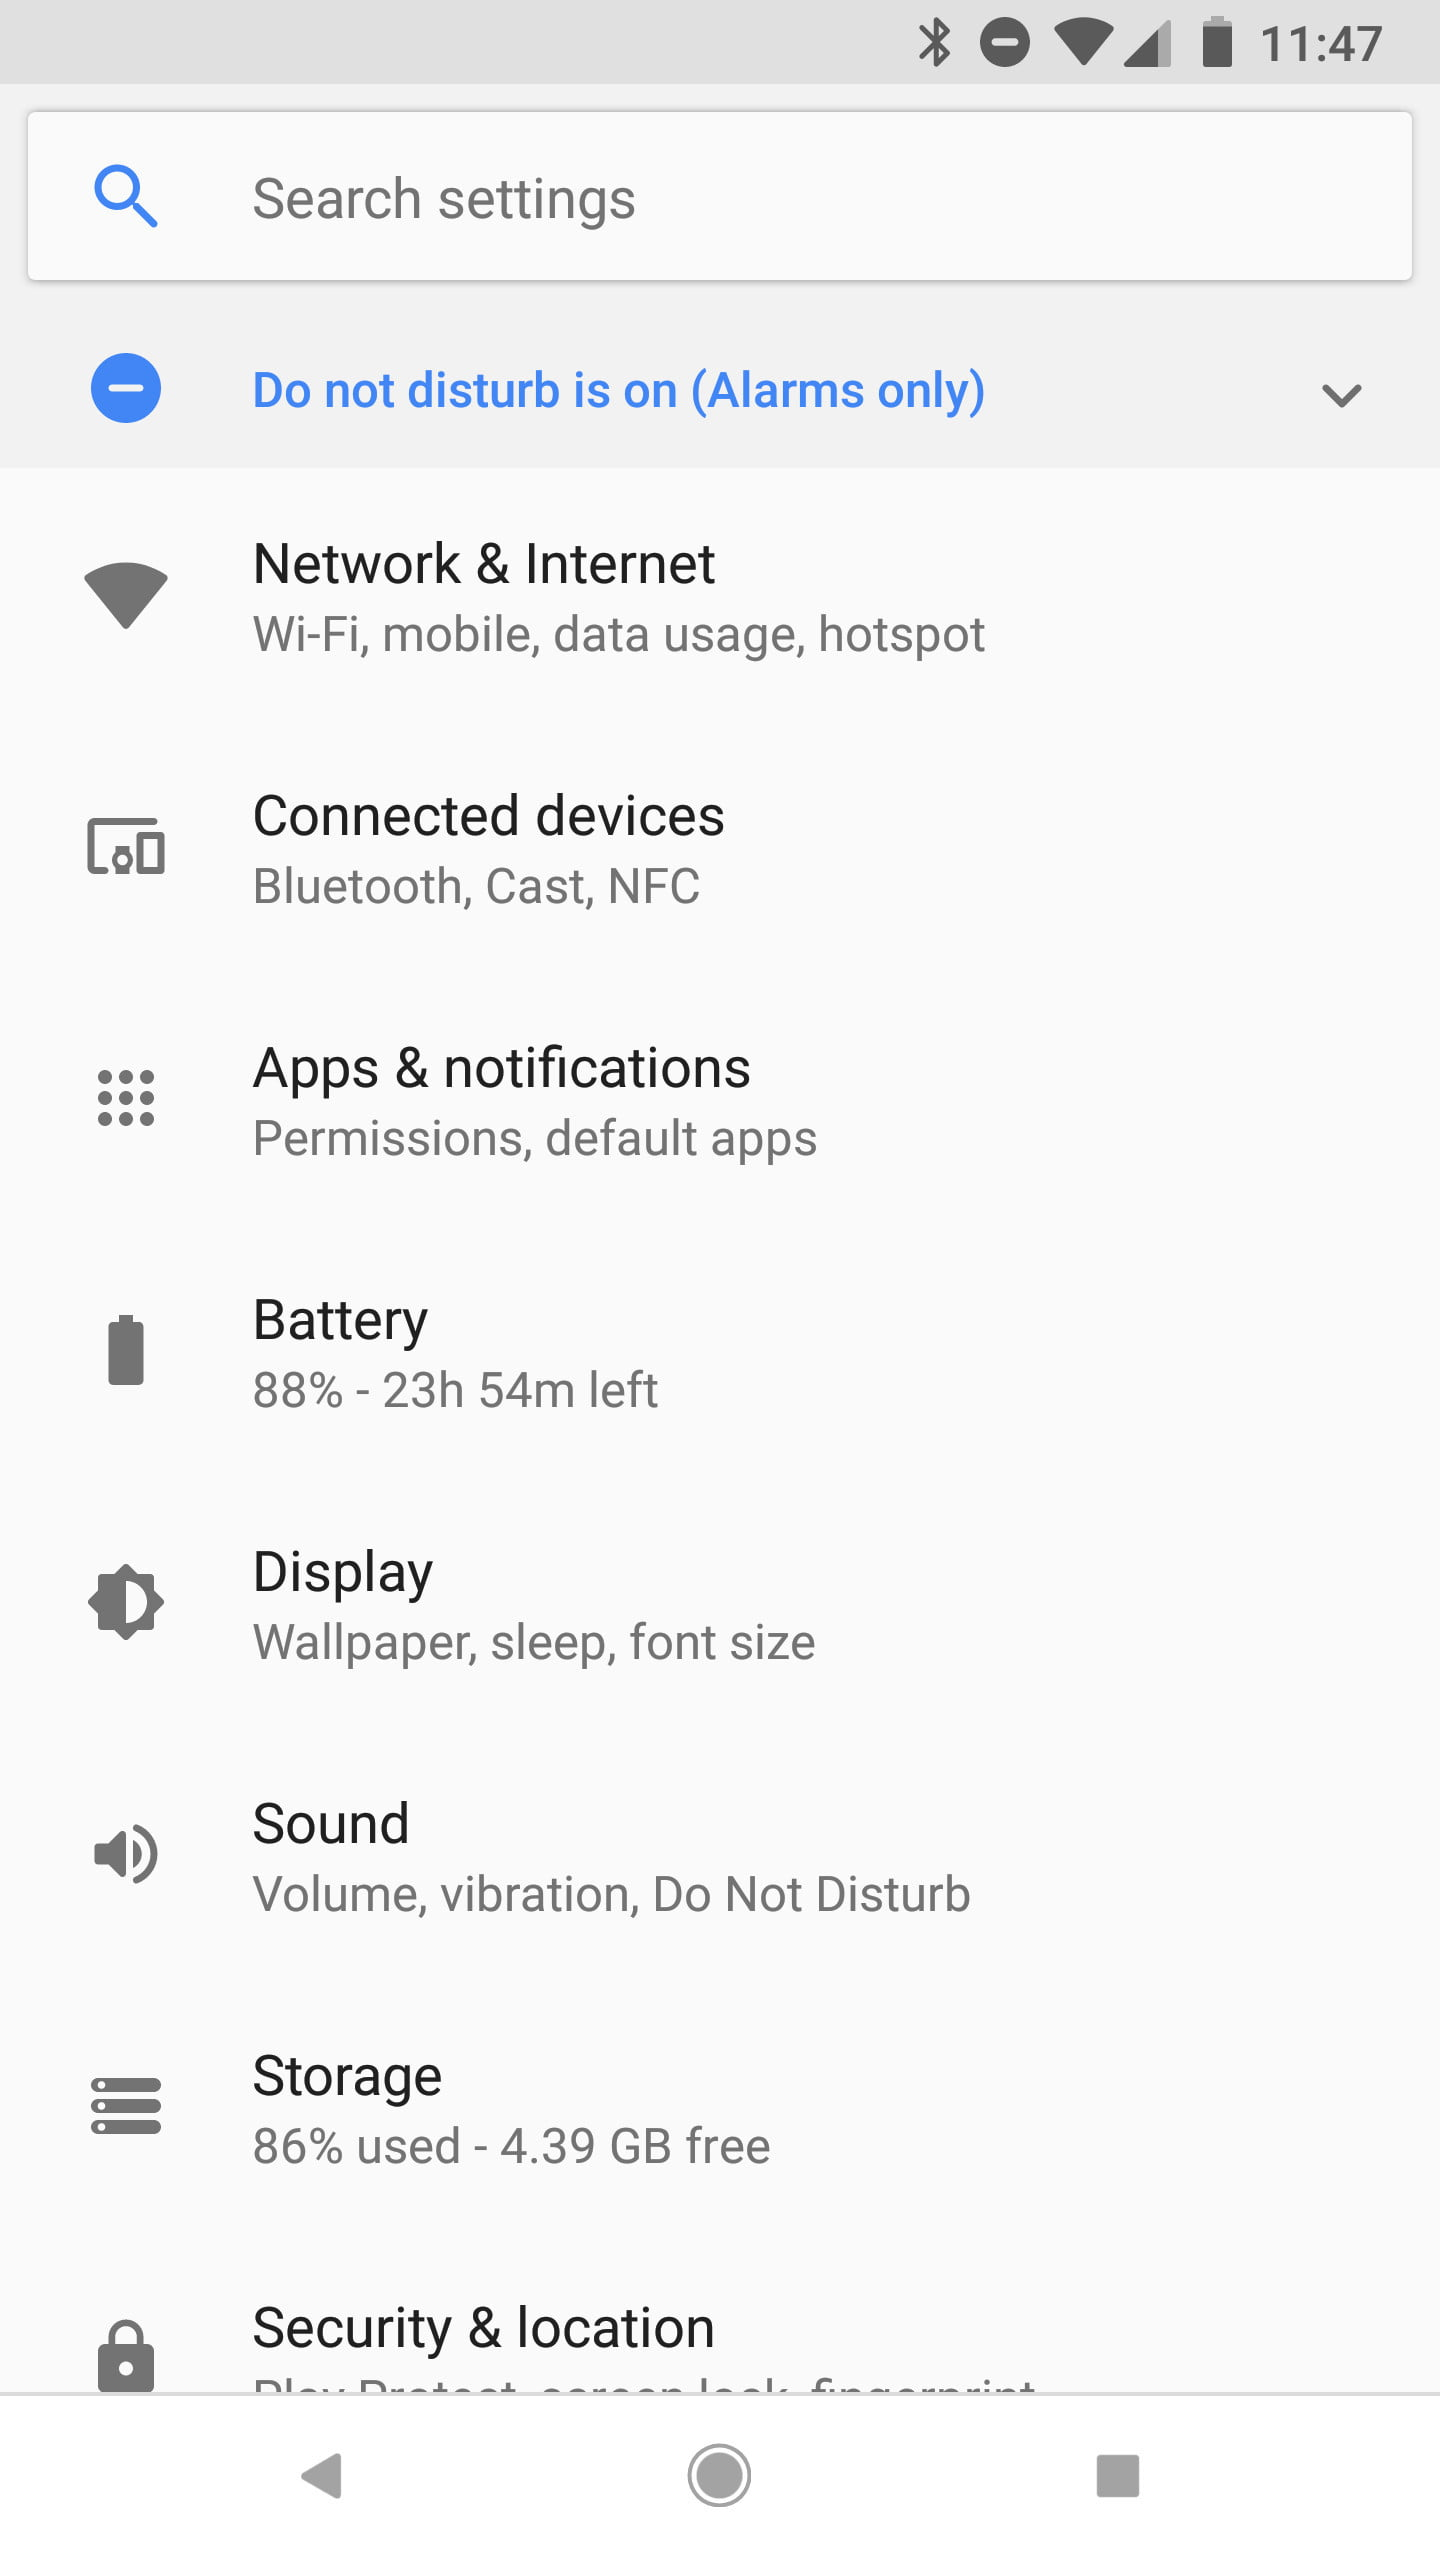 How to Set Up a Hot Spot for Wi-Fi on Android and iOS